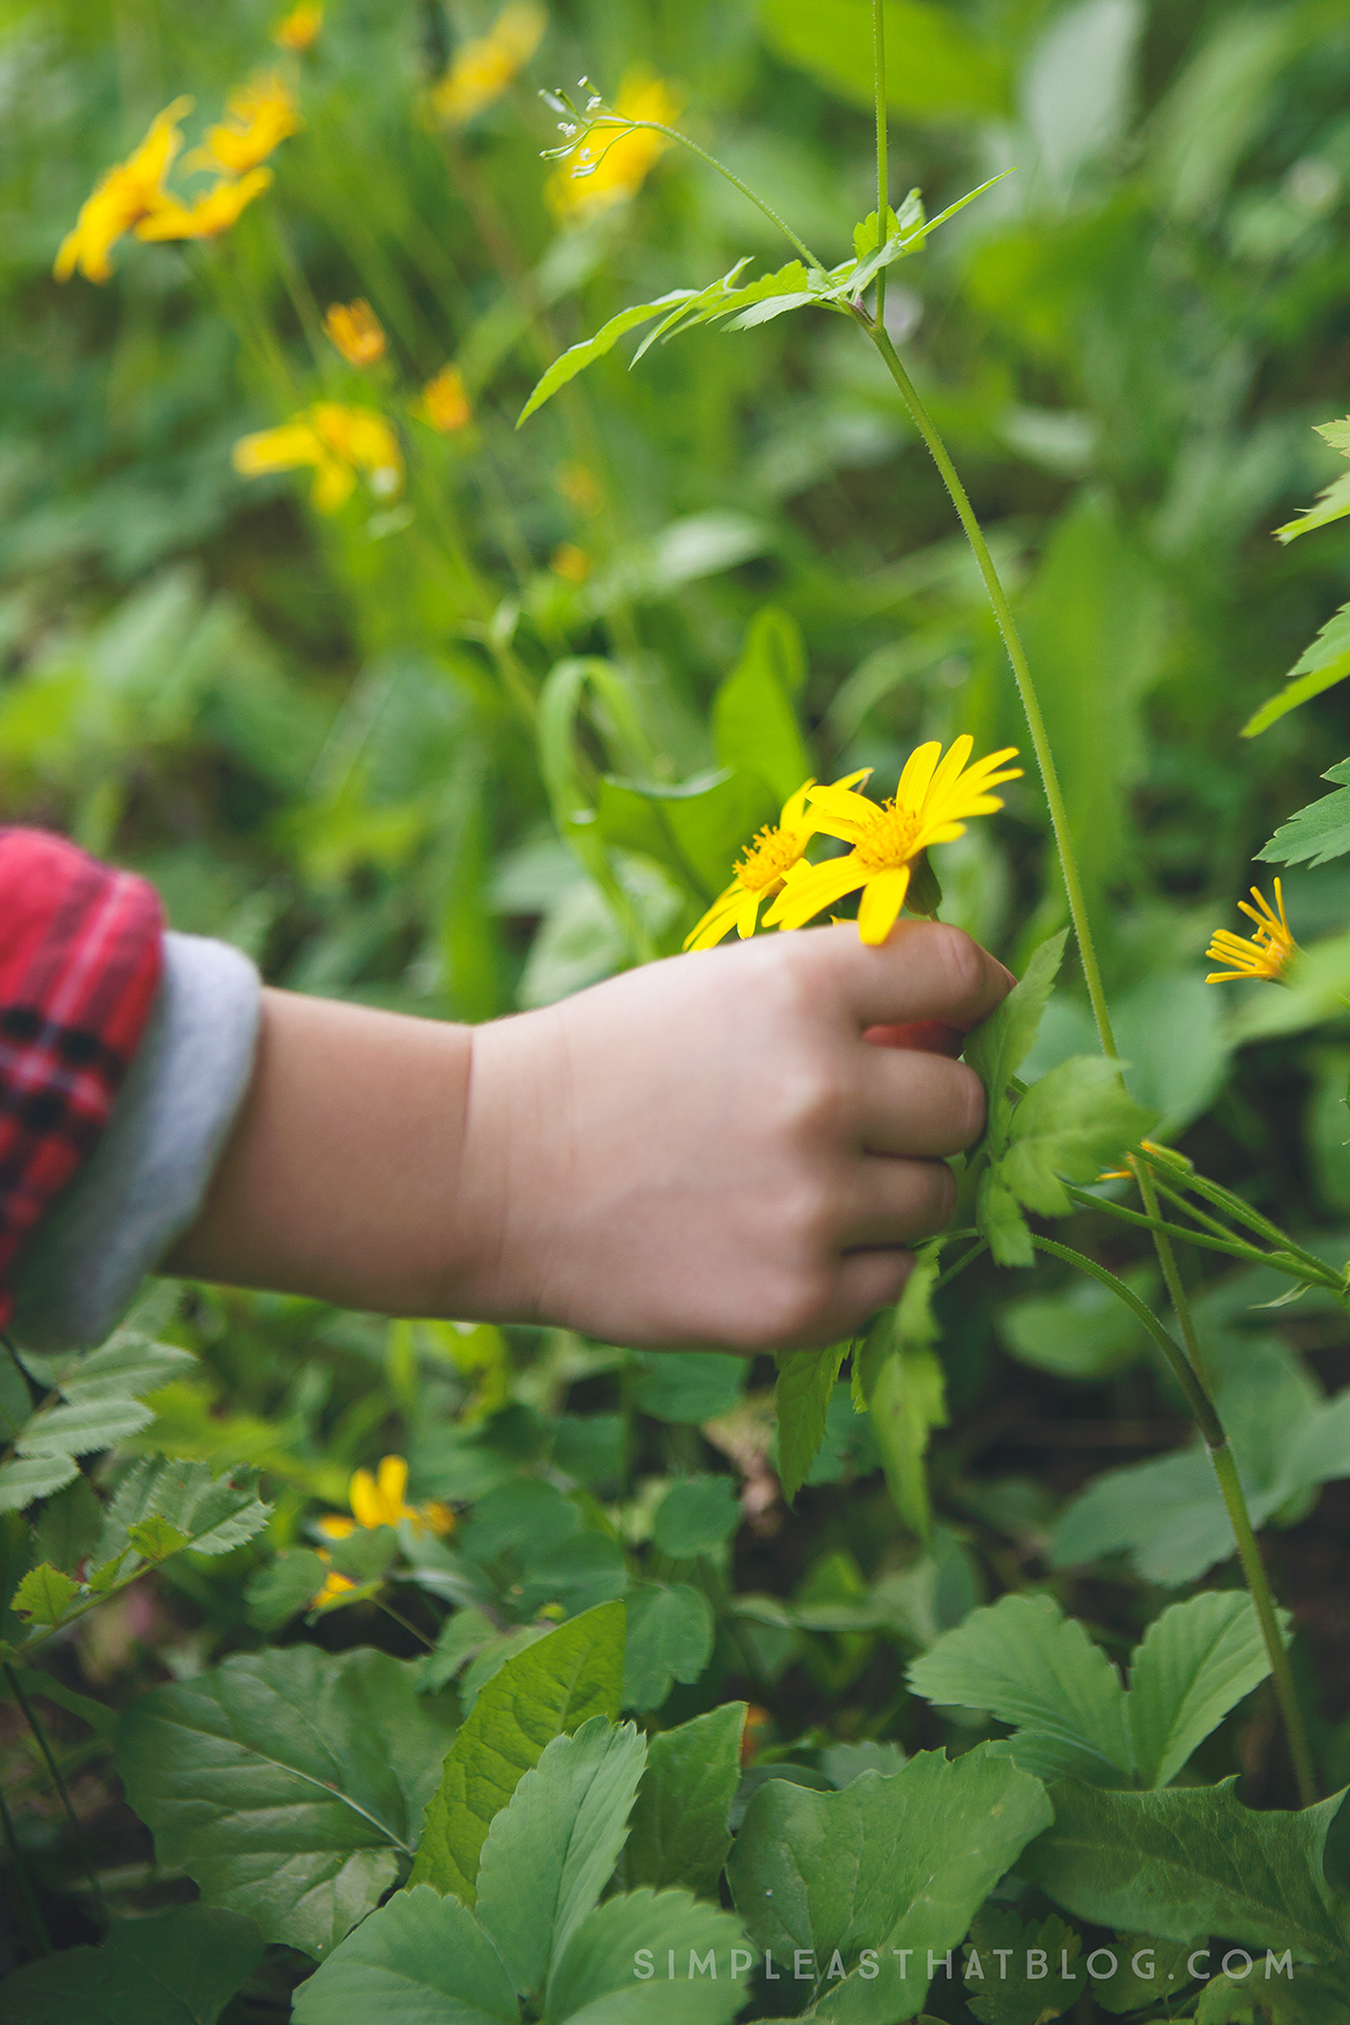 For families who would like to leap from observing to exploring, here are 6 tips to help kids EXPLORE nature with all of their senses.